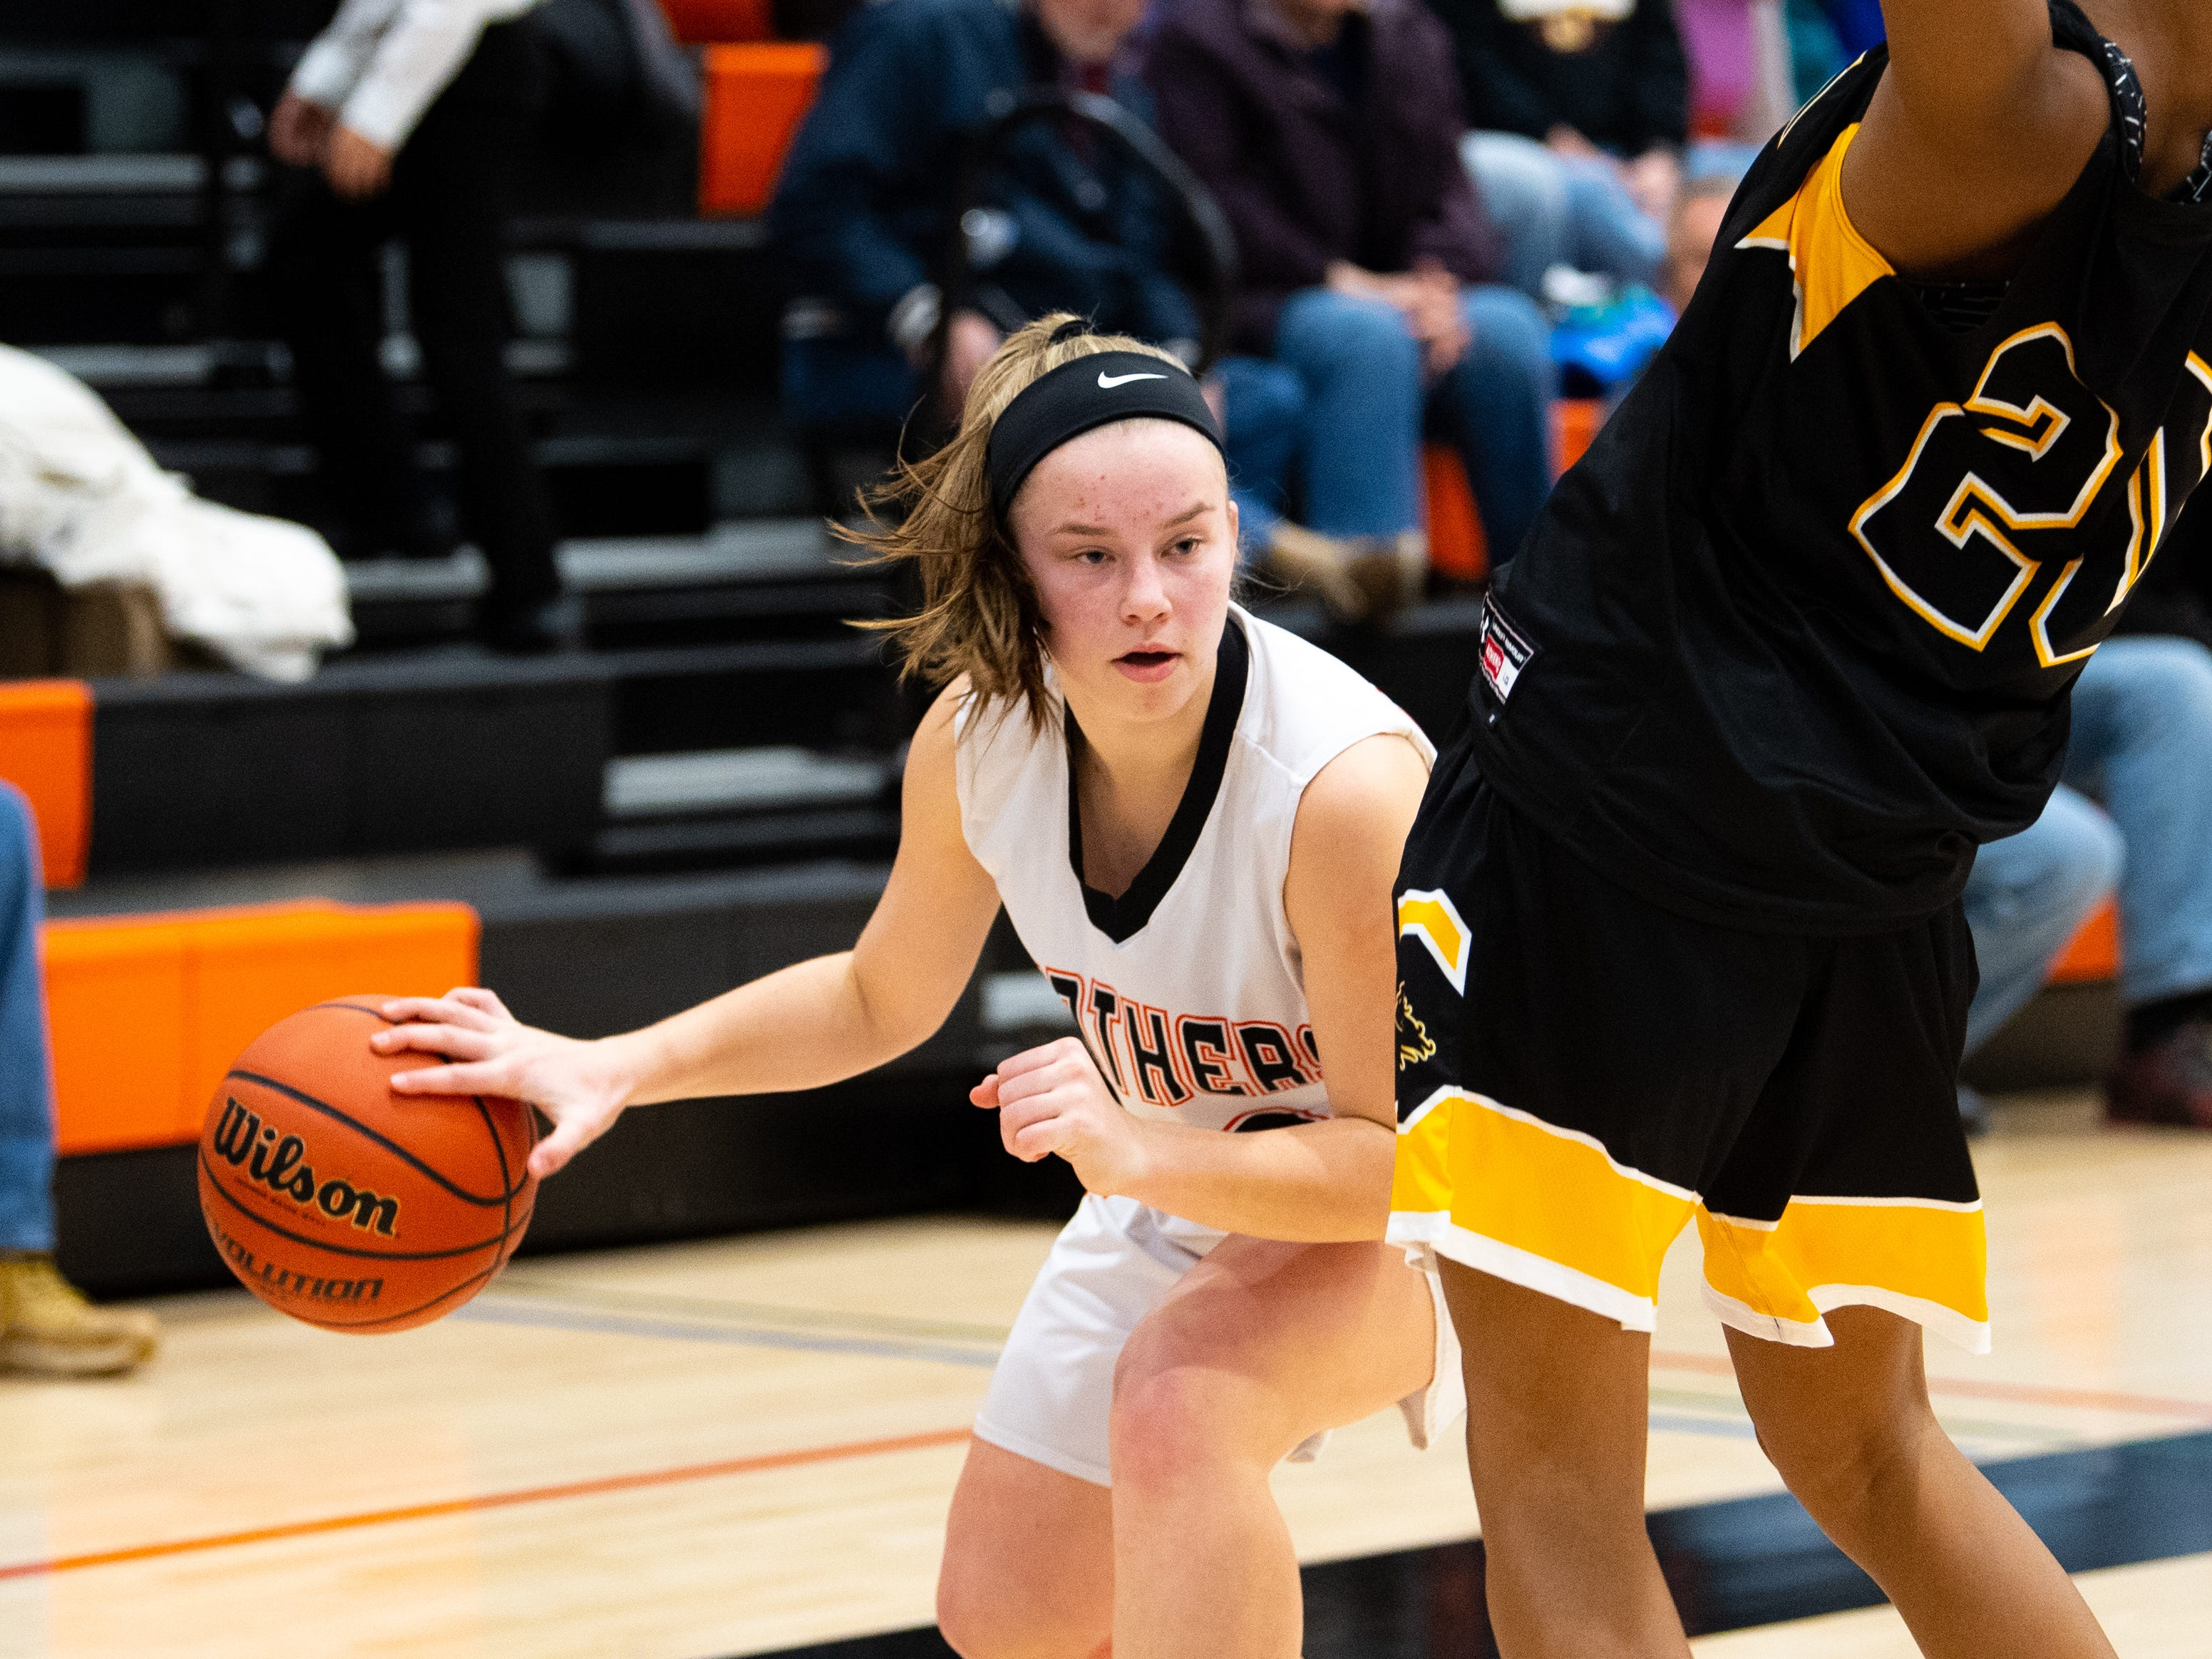 Sarah Berman (23) clears some space during the girls' basketball game between Central York and Red Lion at Central York, Tuesday, December 11, 2018. The Panthers defeated the Lions 40-38.